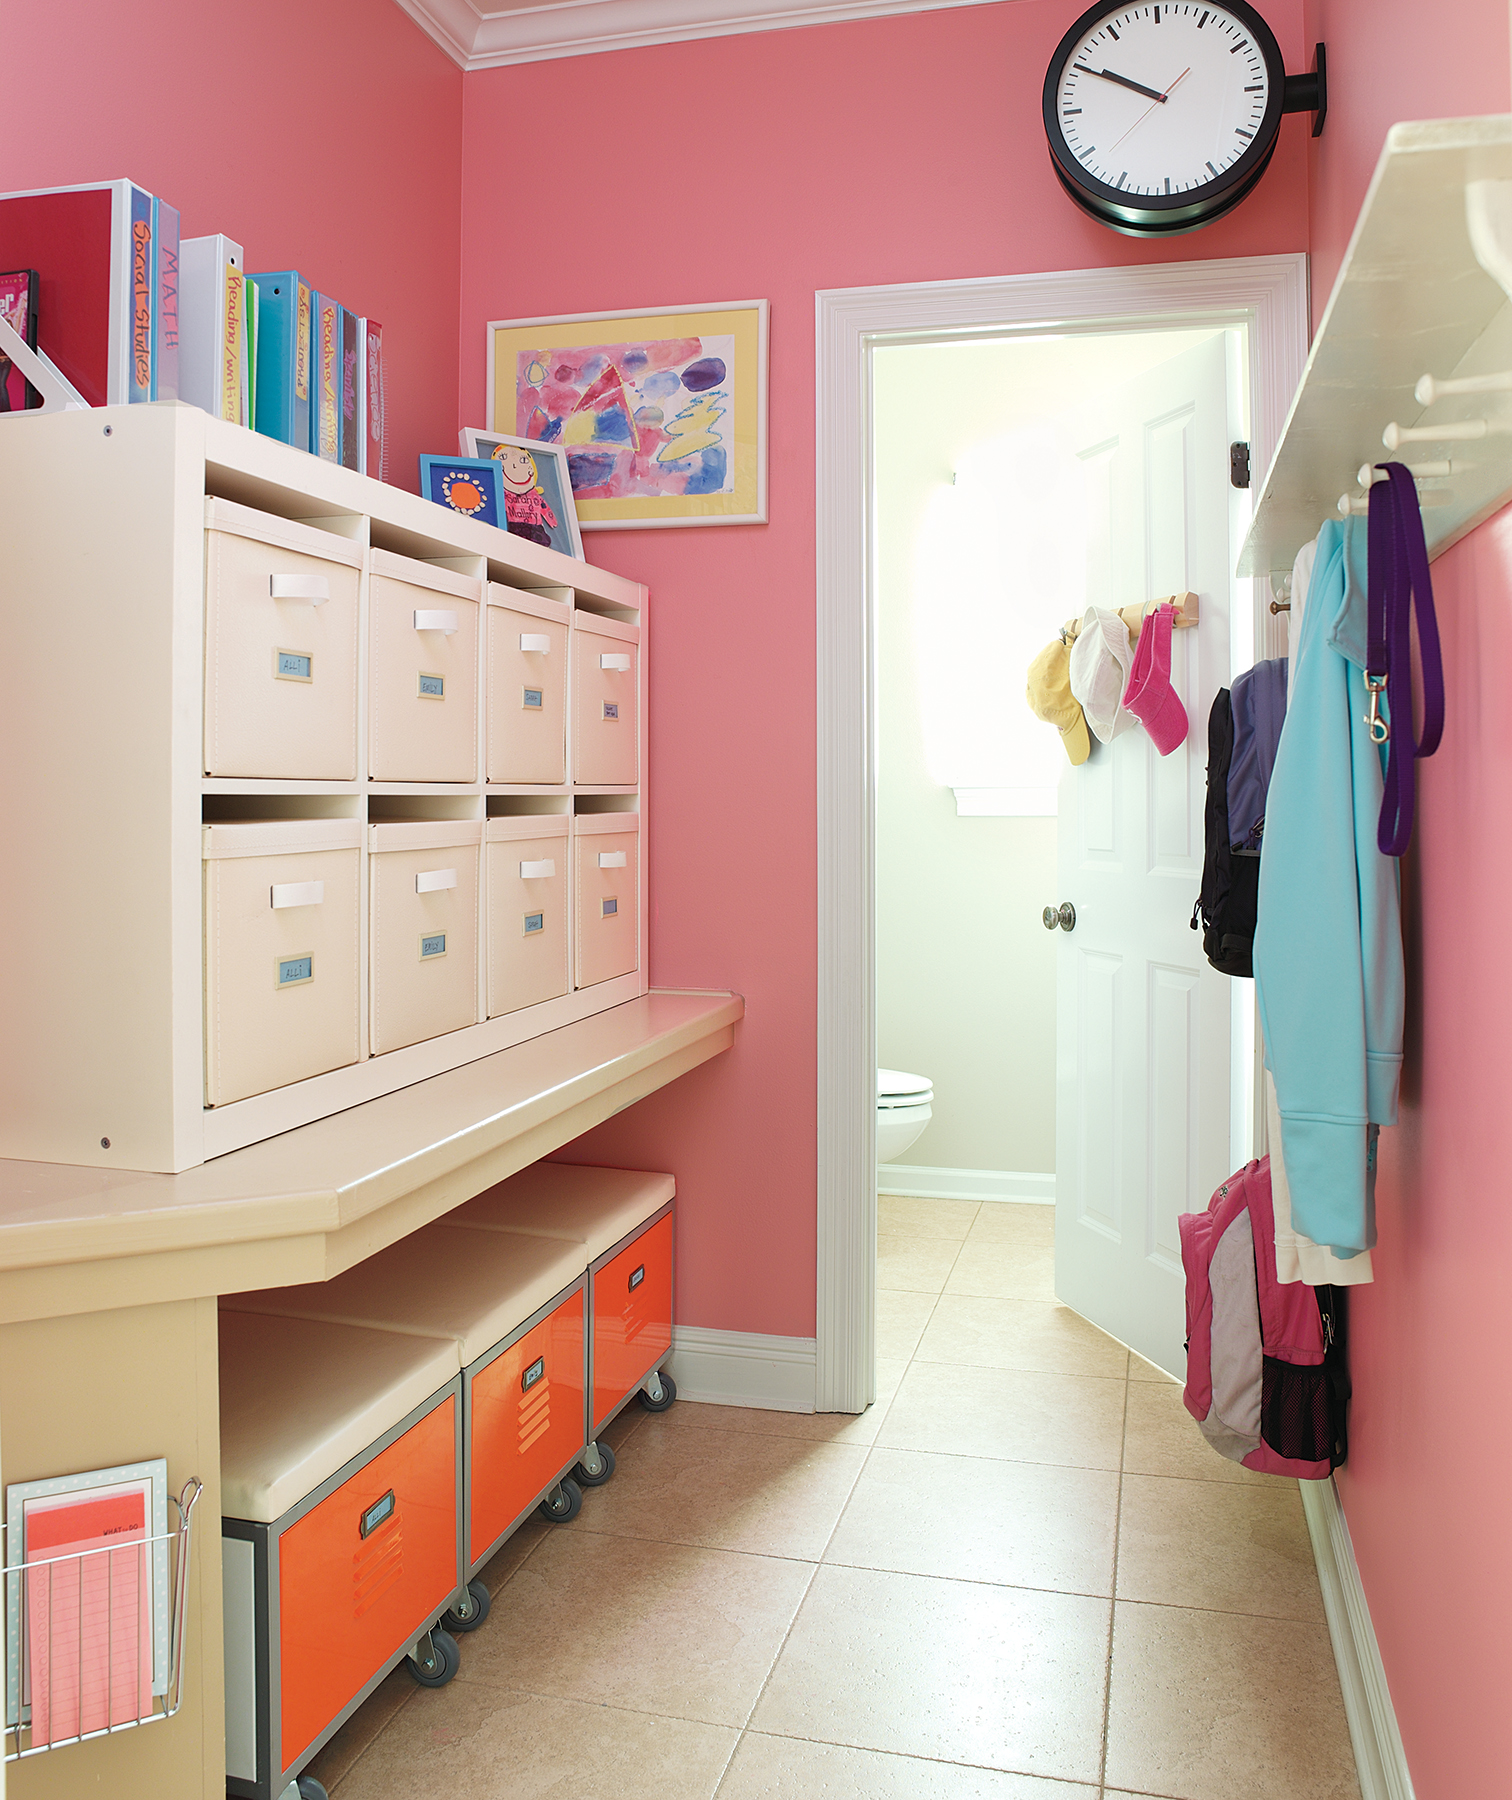 Even a narrow, high-traffic space can be kept orderly with smart storage, such as bins and pegs.